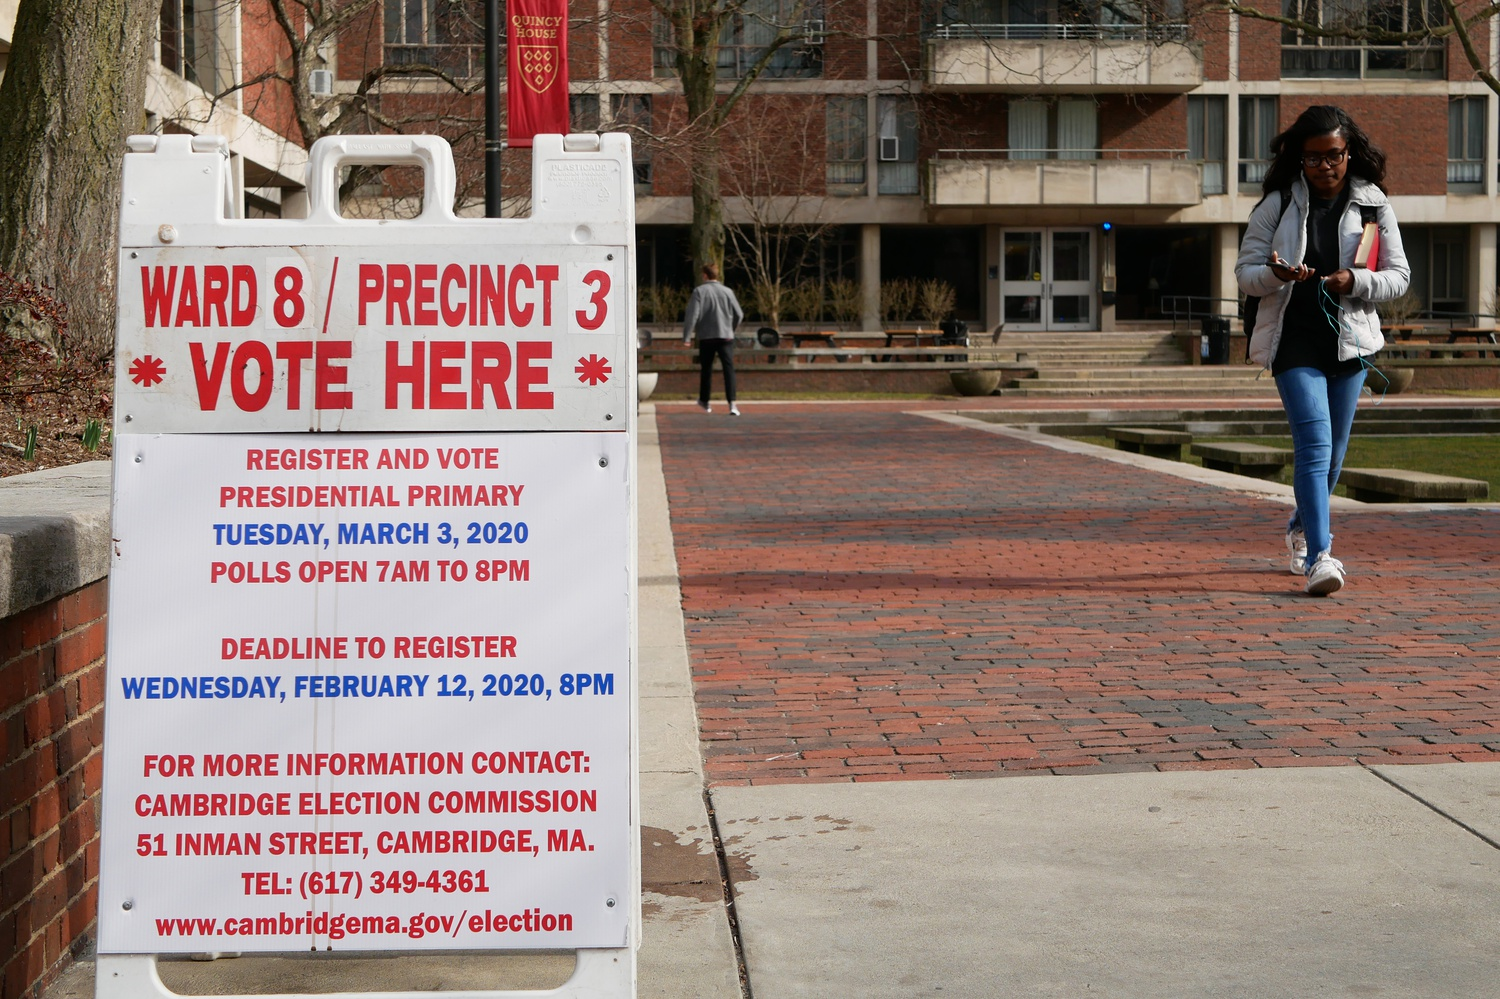 A voter registration signpost stands in Quincy House's courtyard on a sunny Tuesday afternoon.